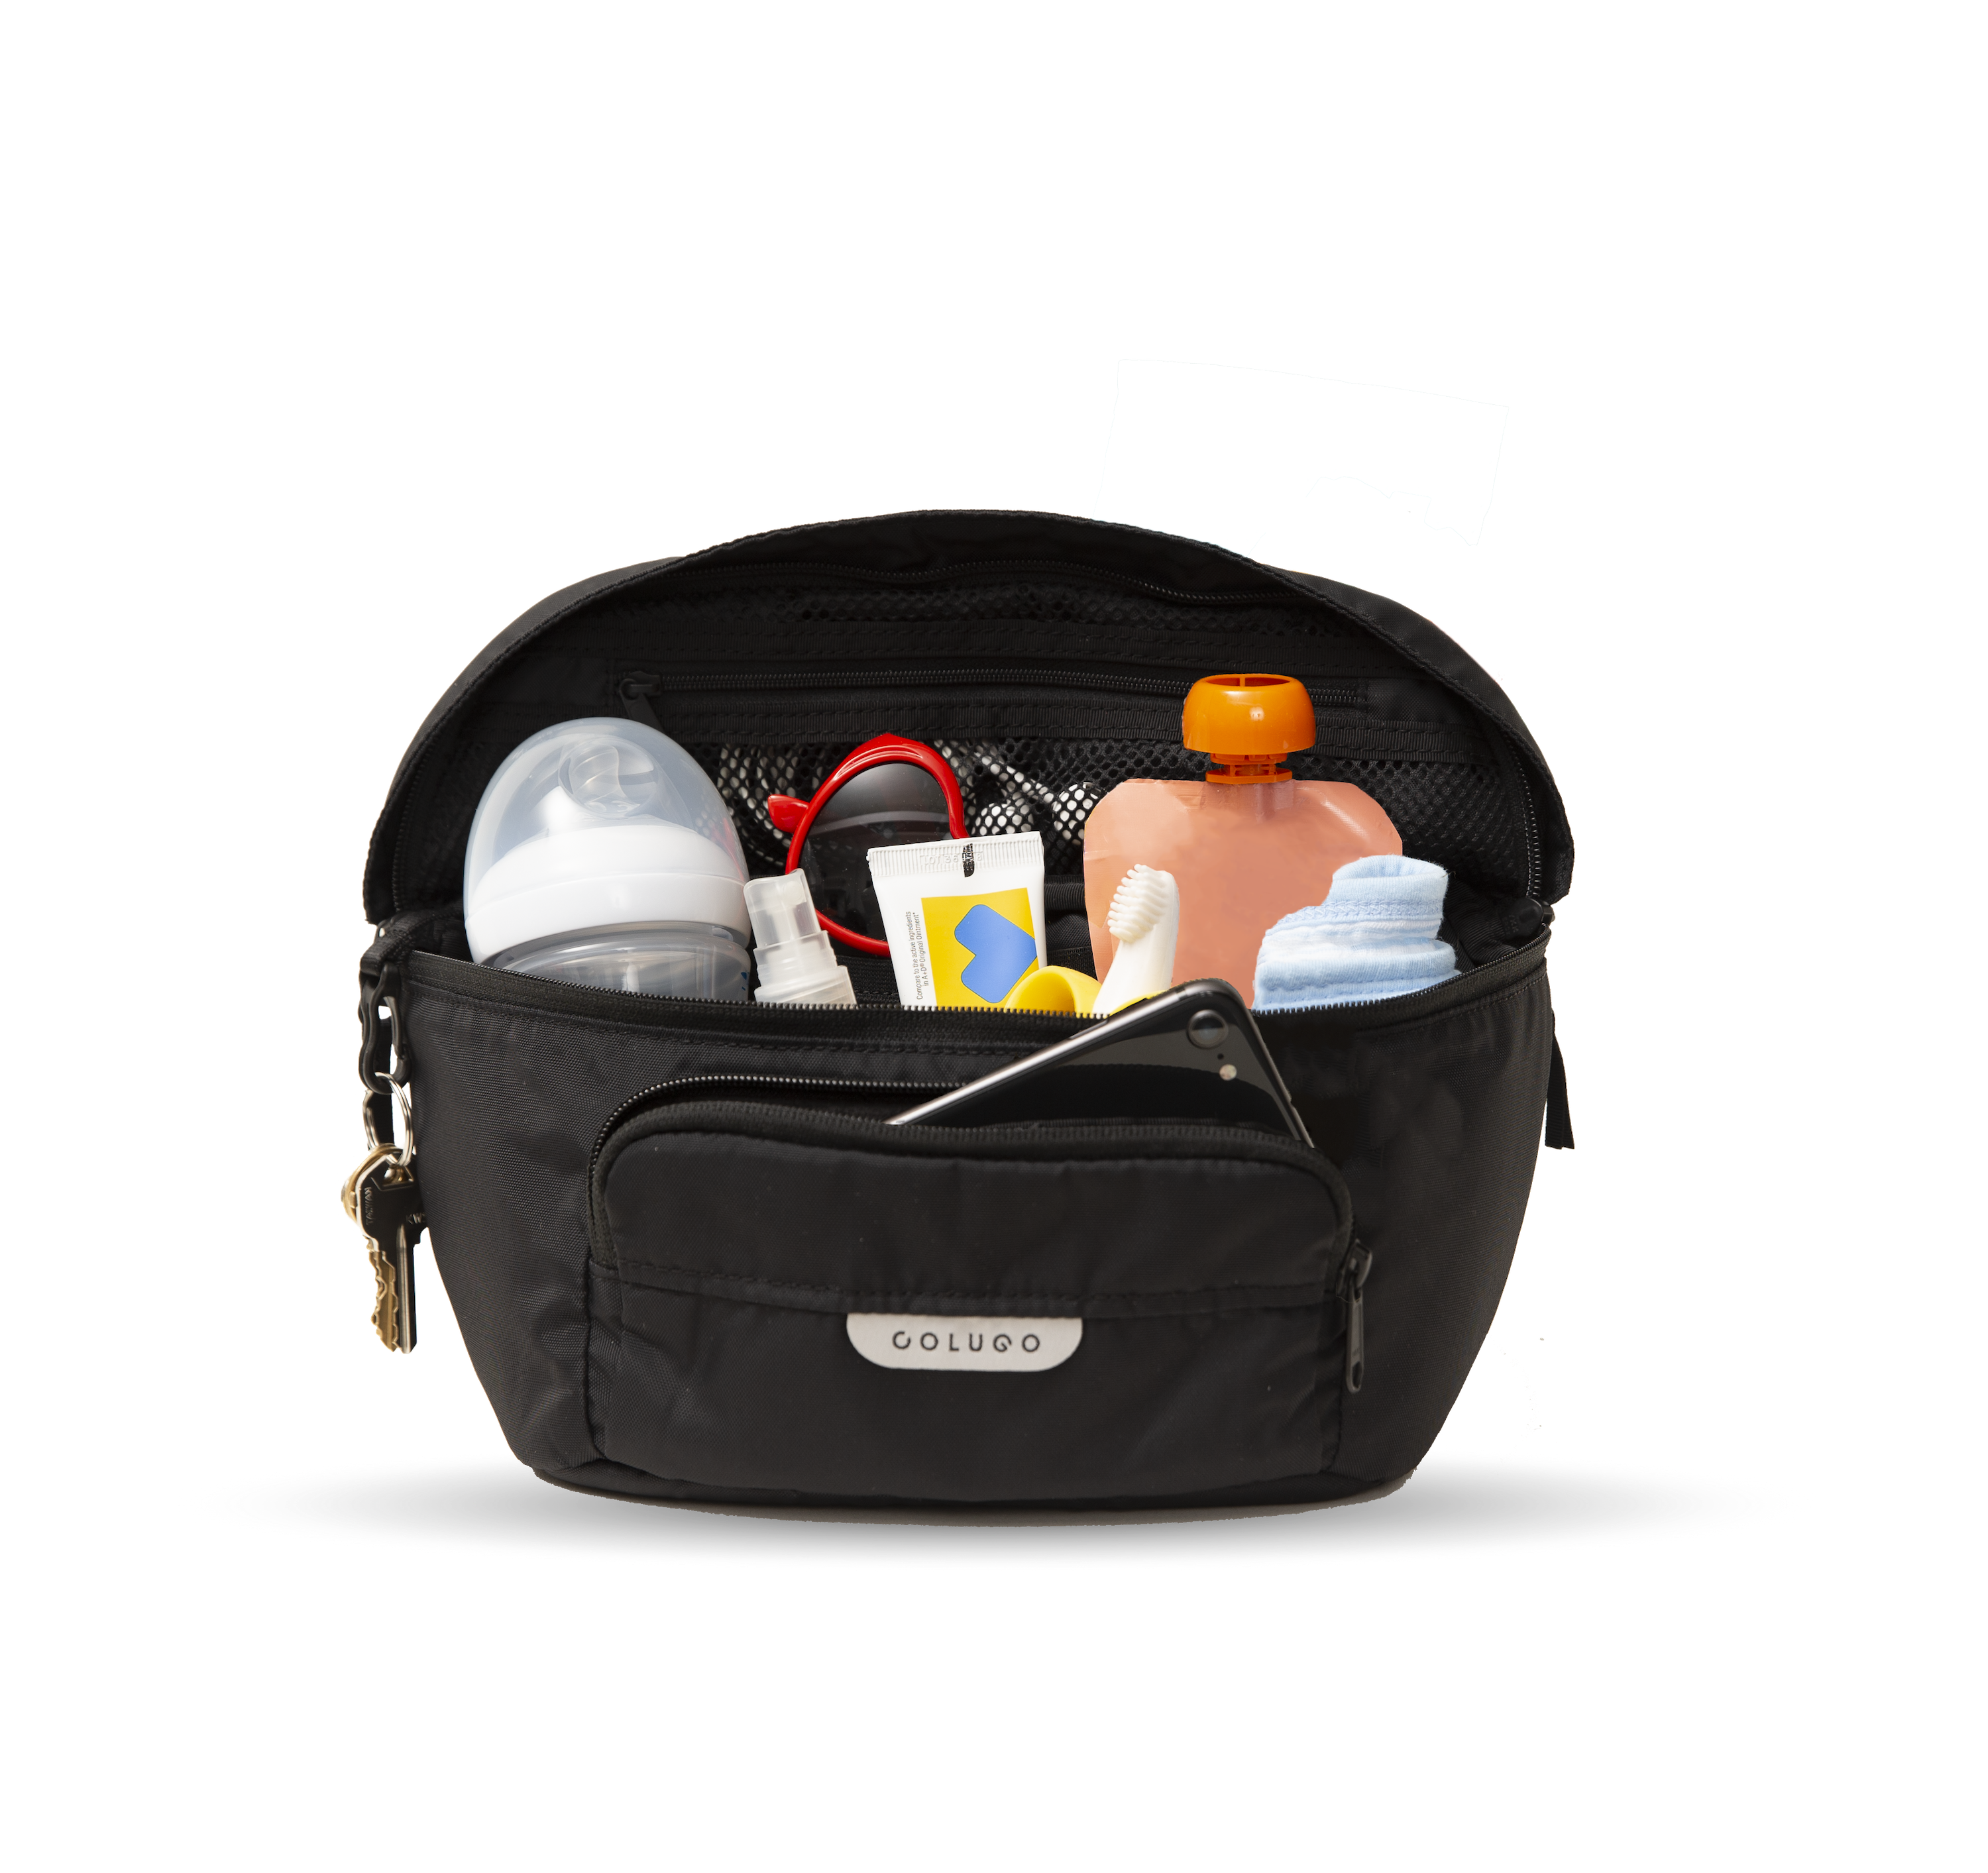 The On the Go Organizer Black Diaper backpack